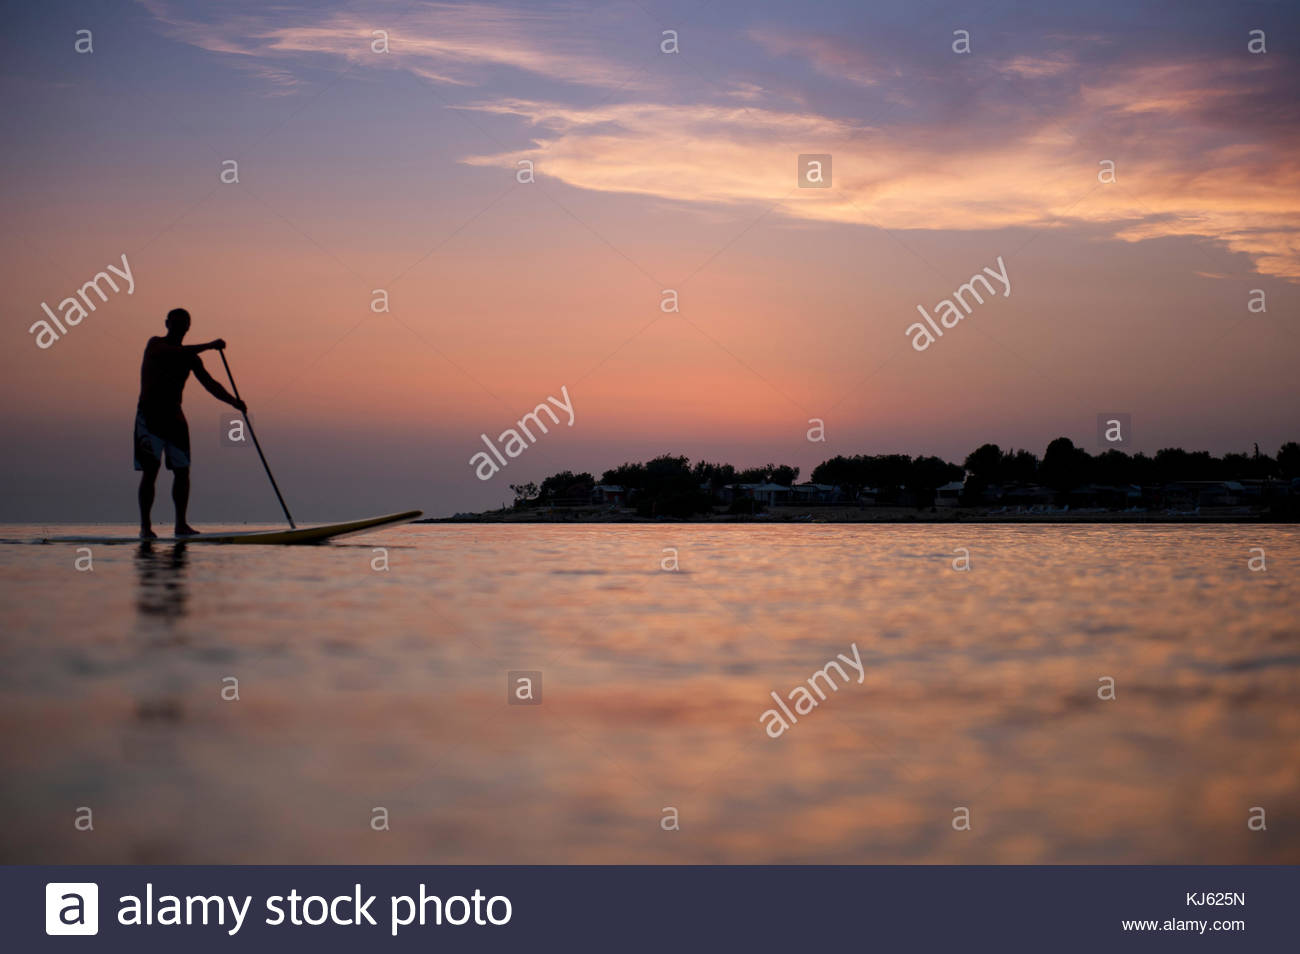 standup paddle boarding Stock Photo